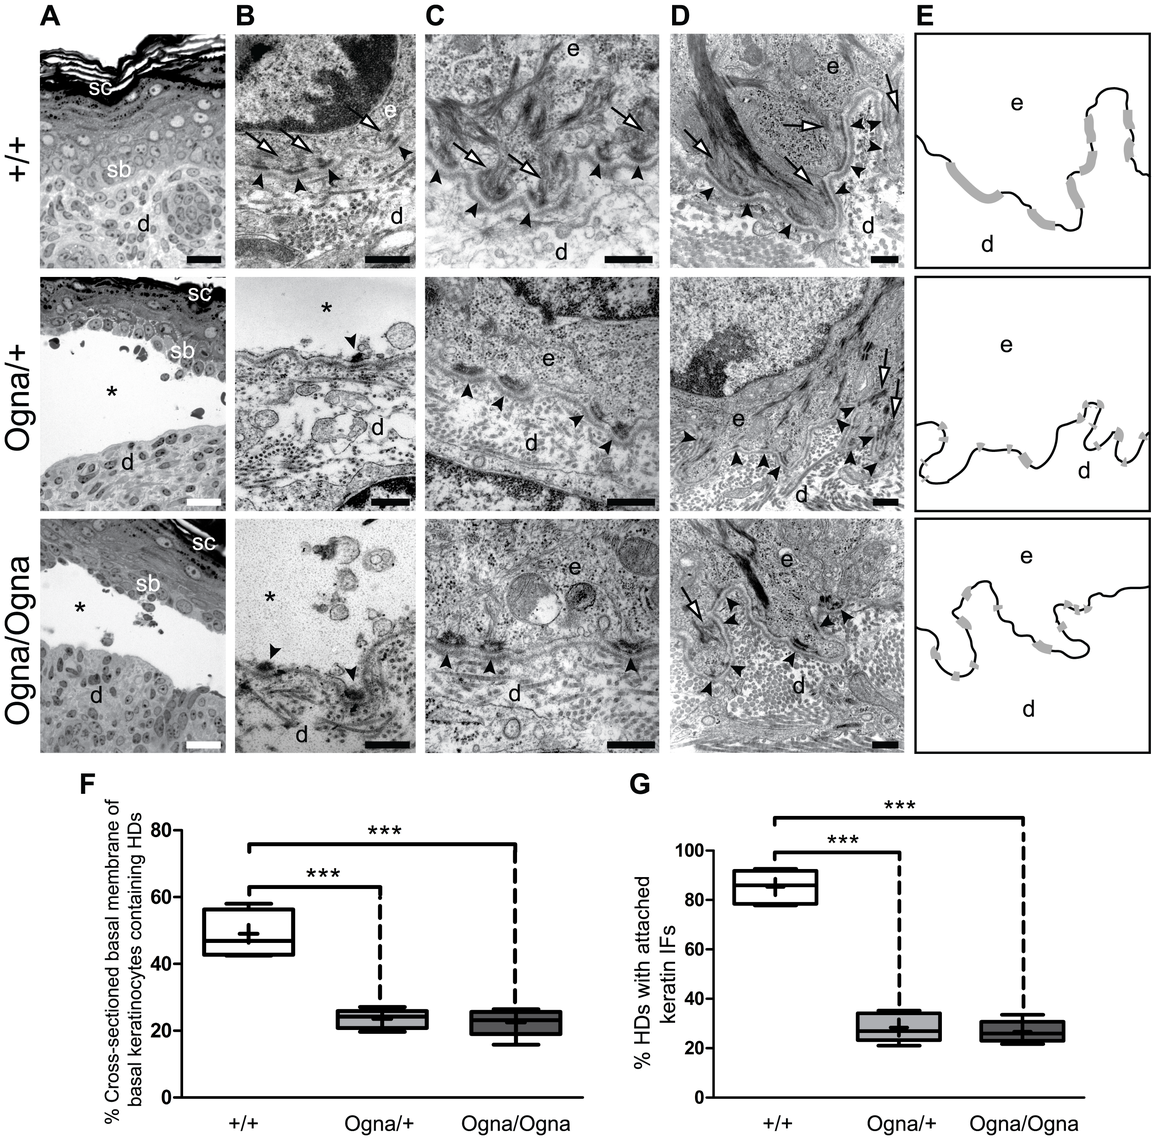 Histological and ultrastructural abnormalities of Ogna mouse skin.